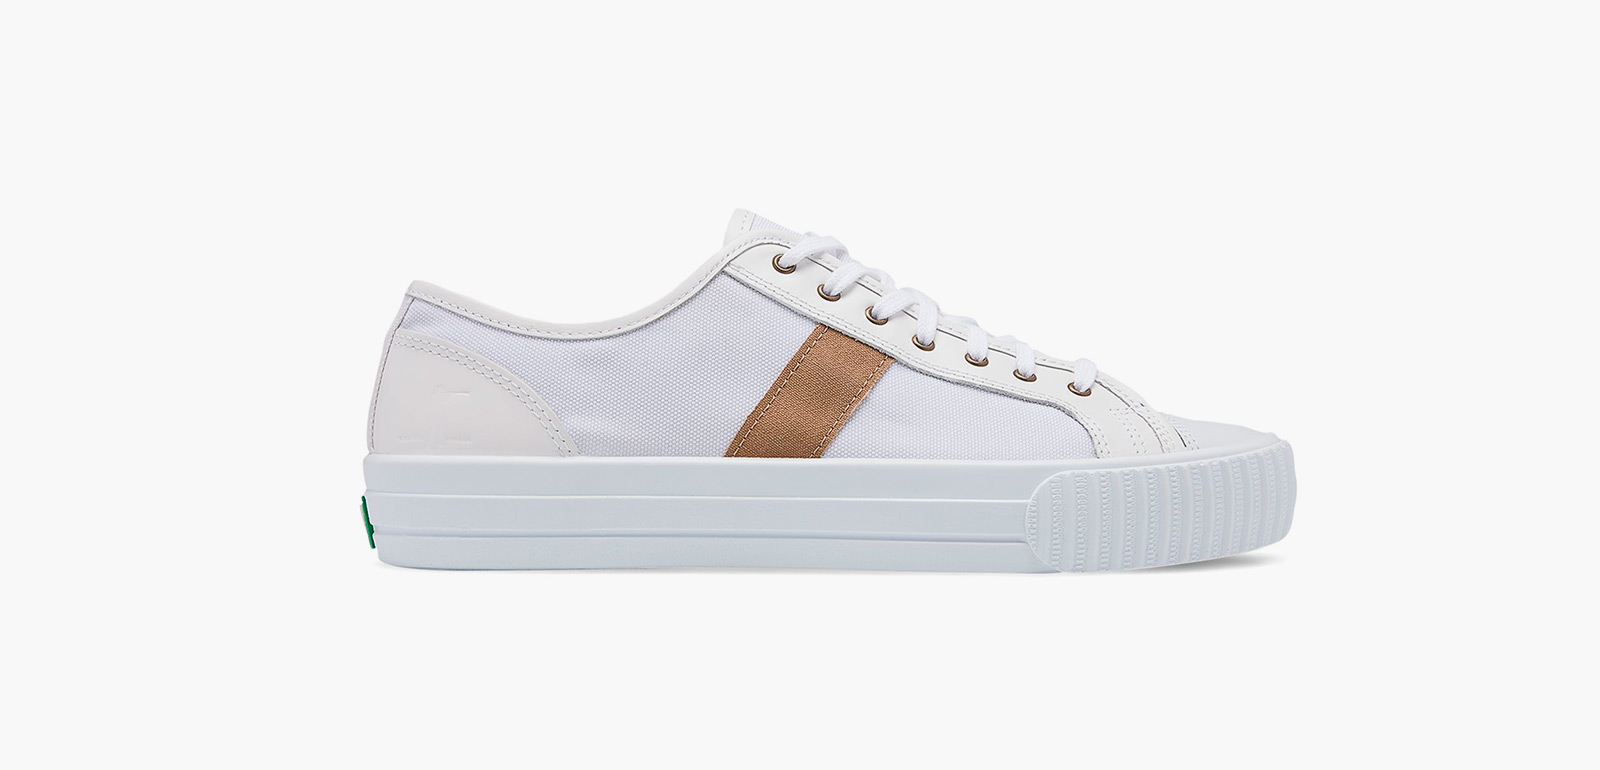 PF Flyers Ball and Buck Center Lo